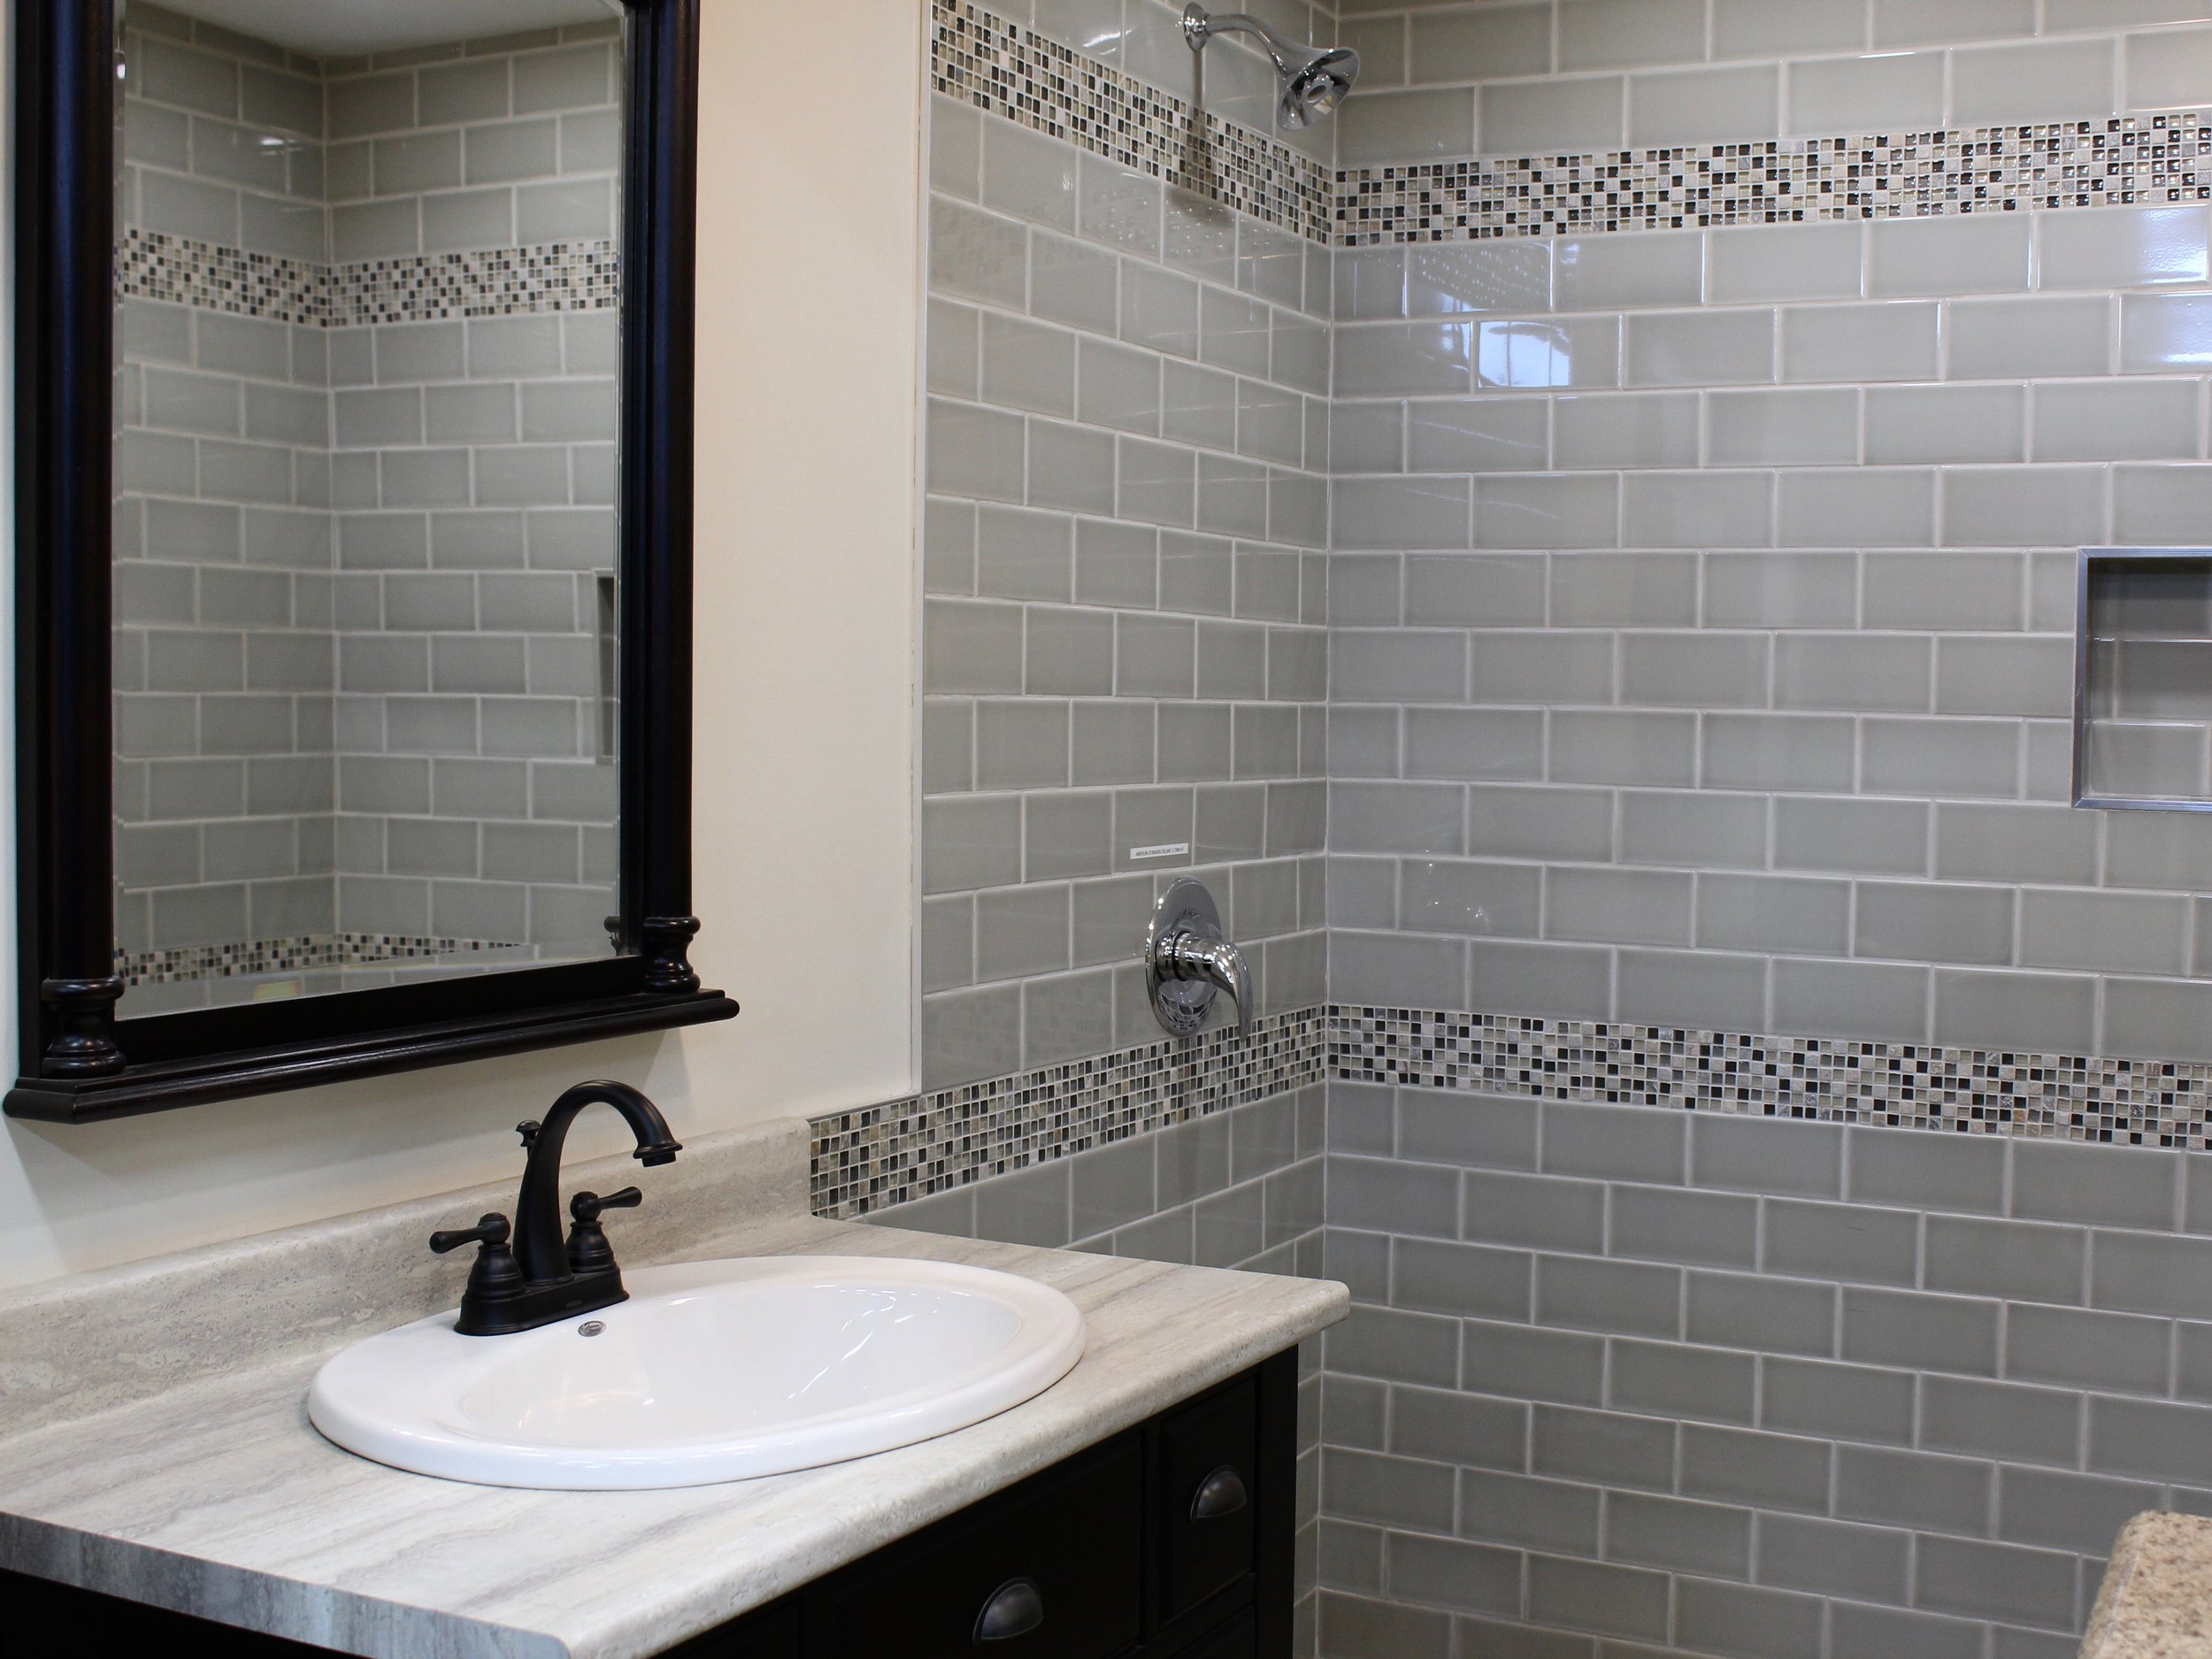 Bathroom with subway tile and mosaics